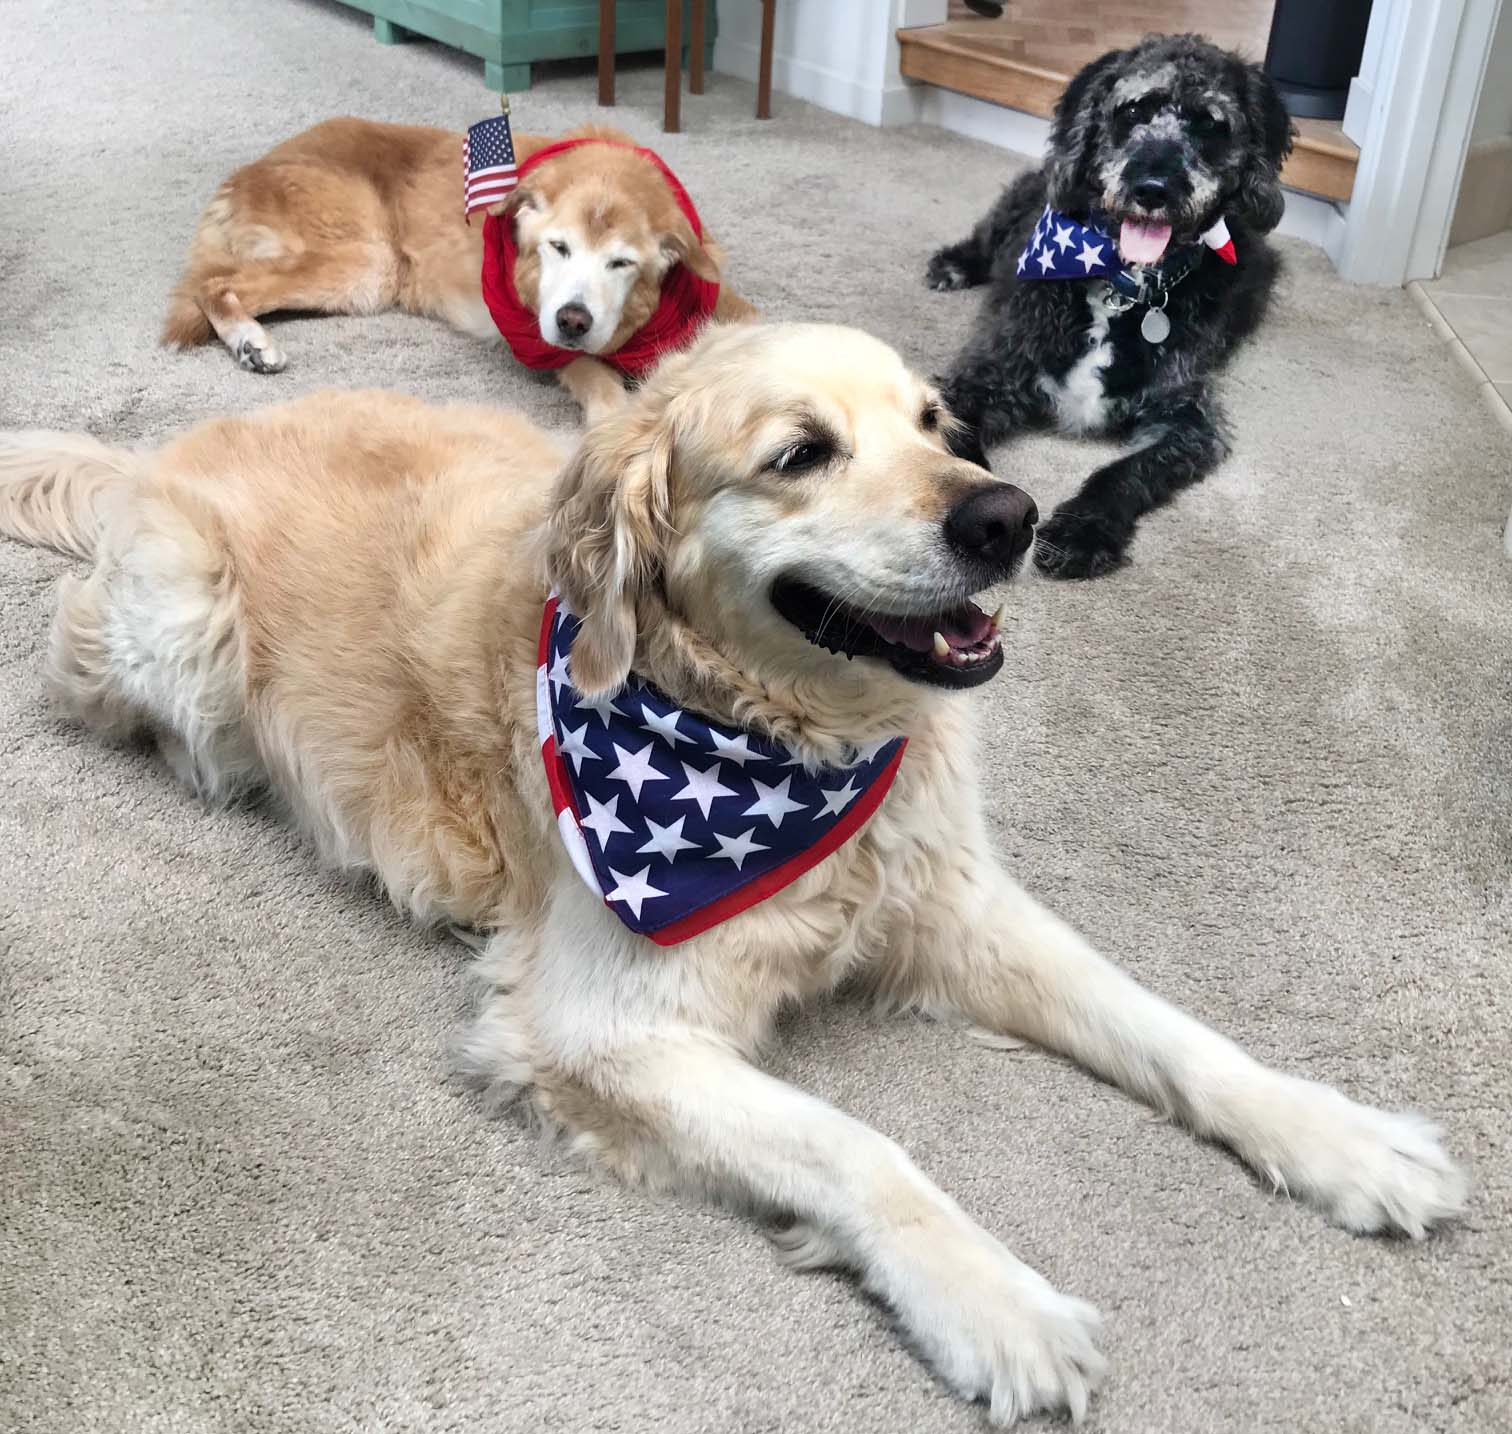 Diamond, Woody and Dash celebrating the 4th!